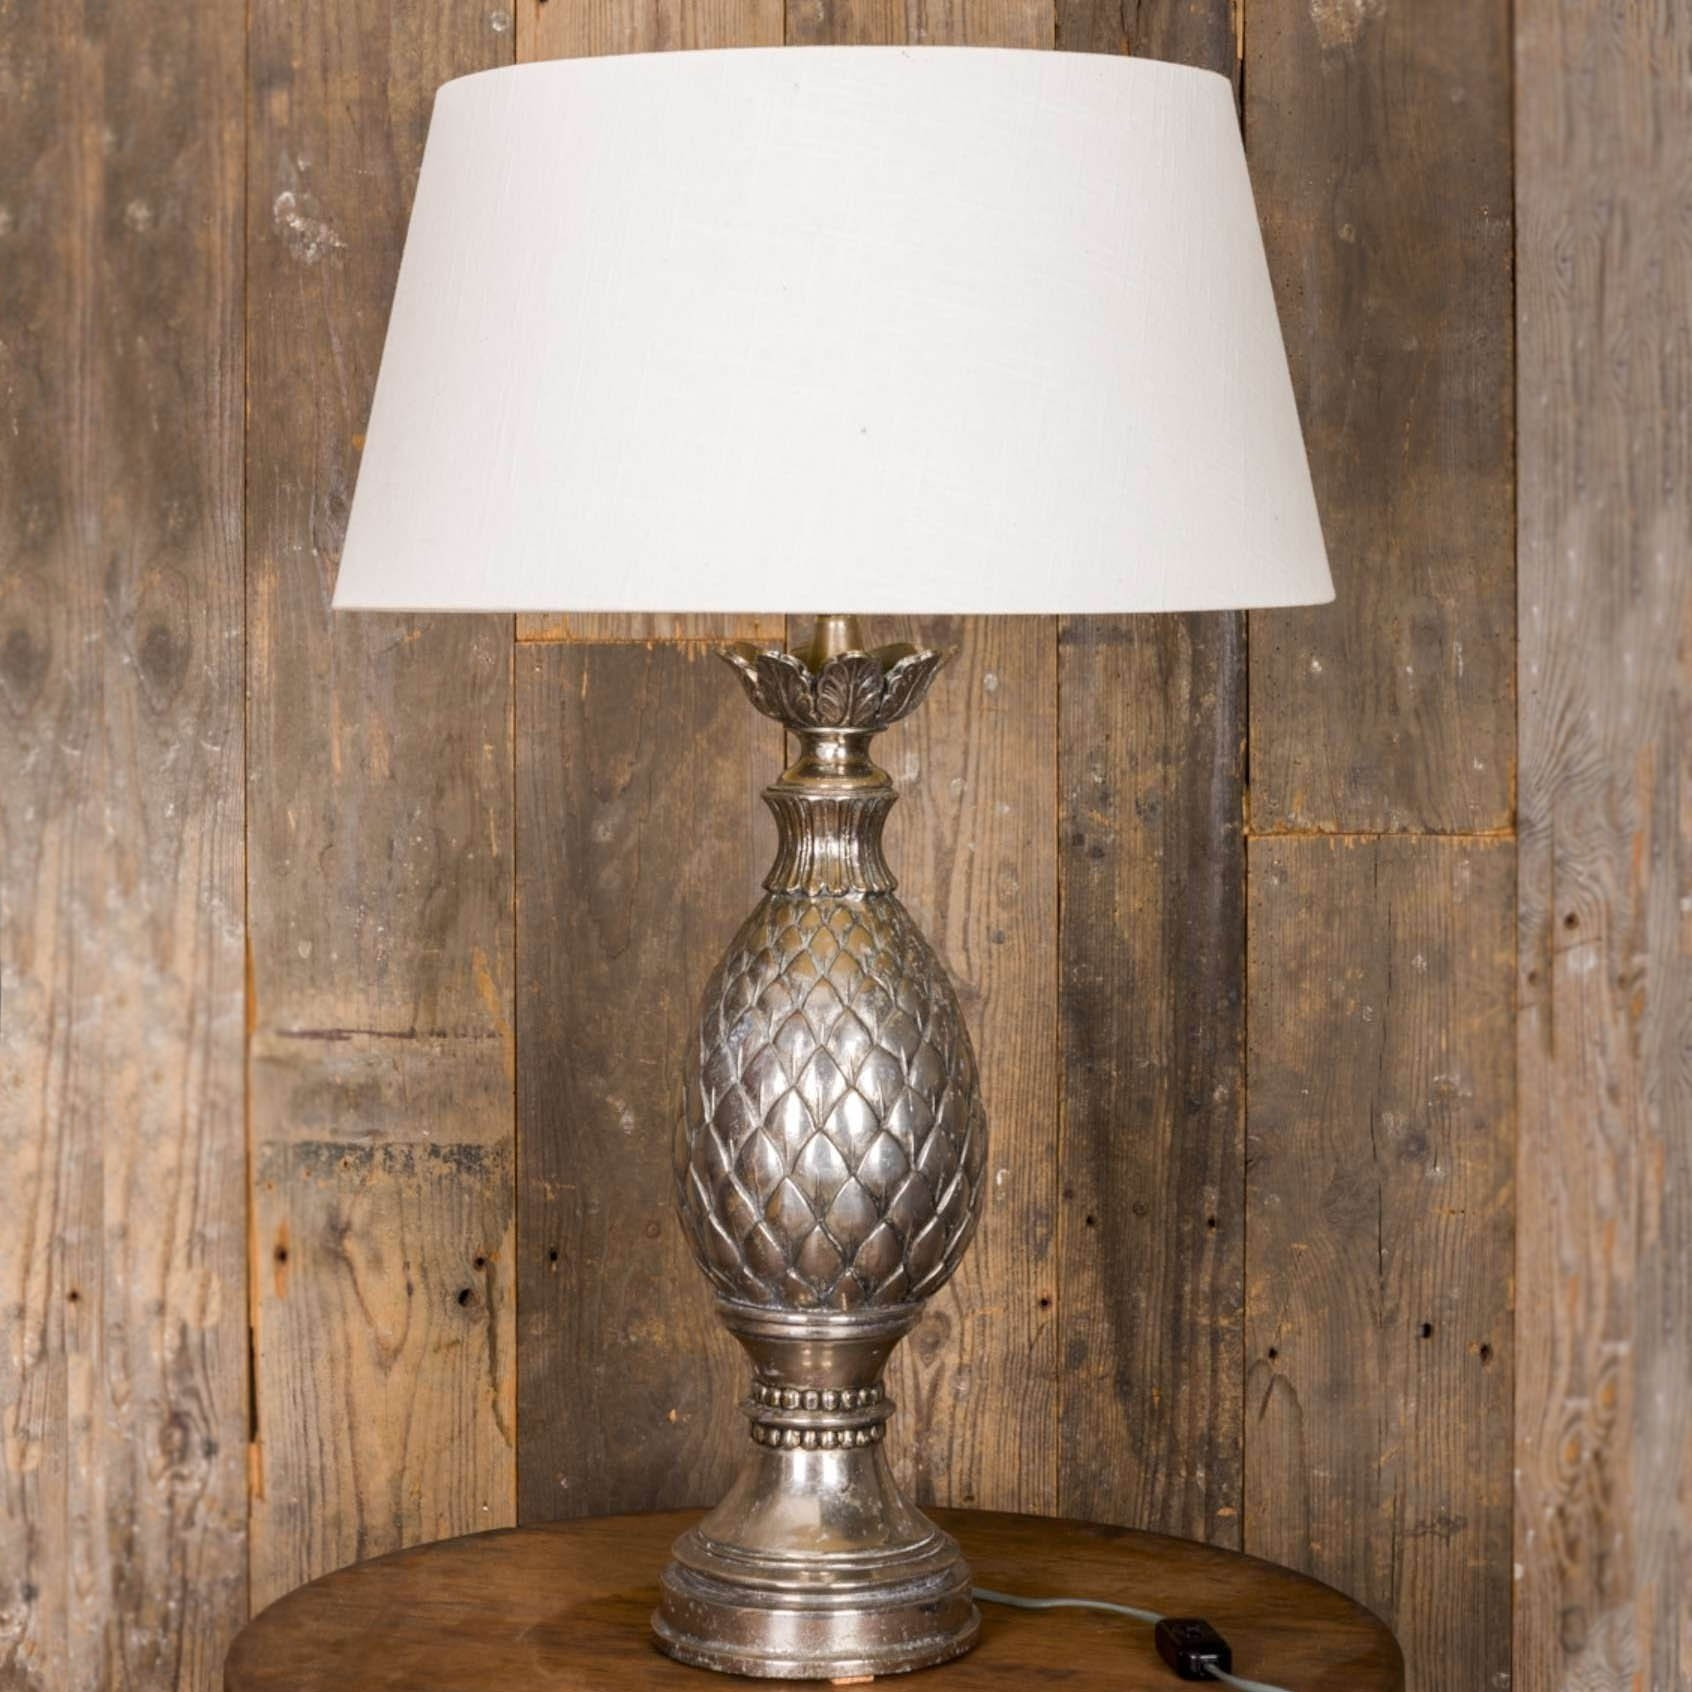 A pair of tablelamps in the style of Maison Charles